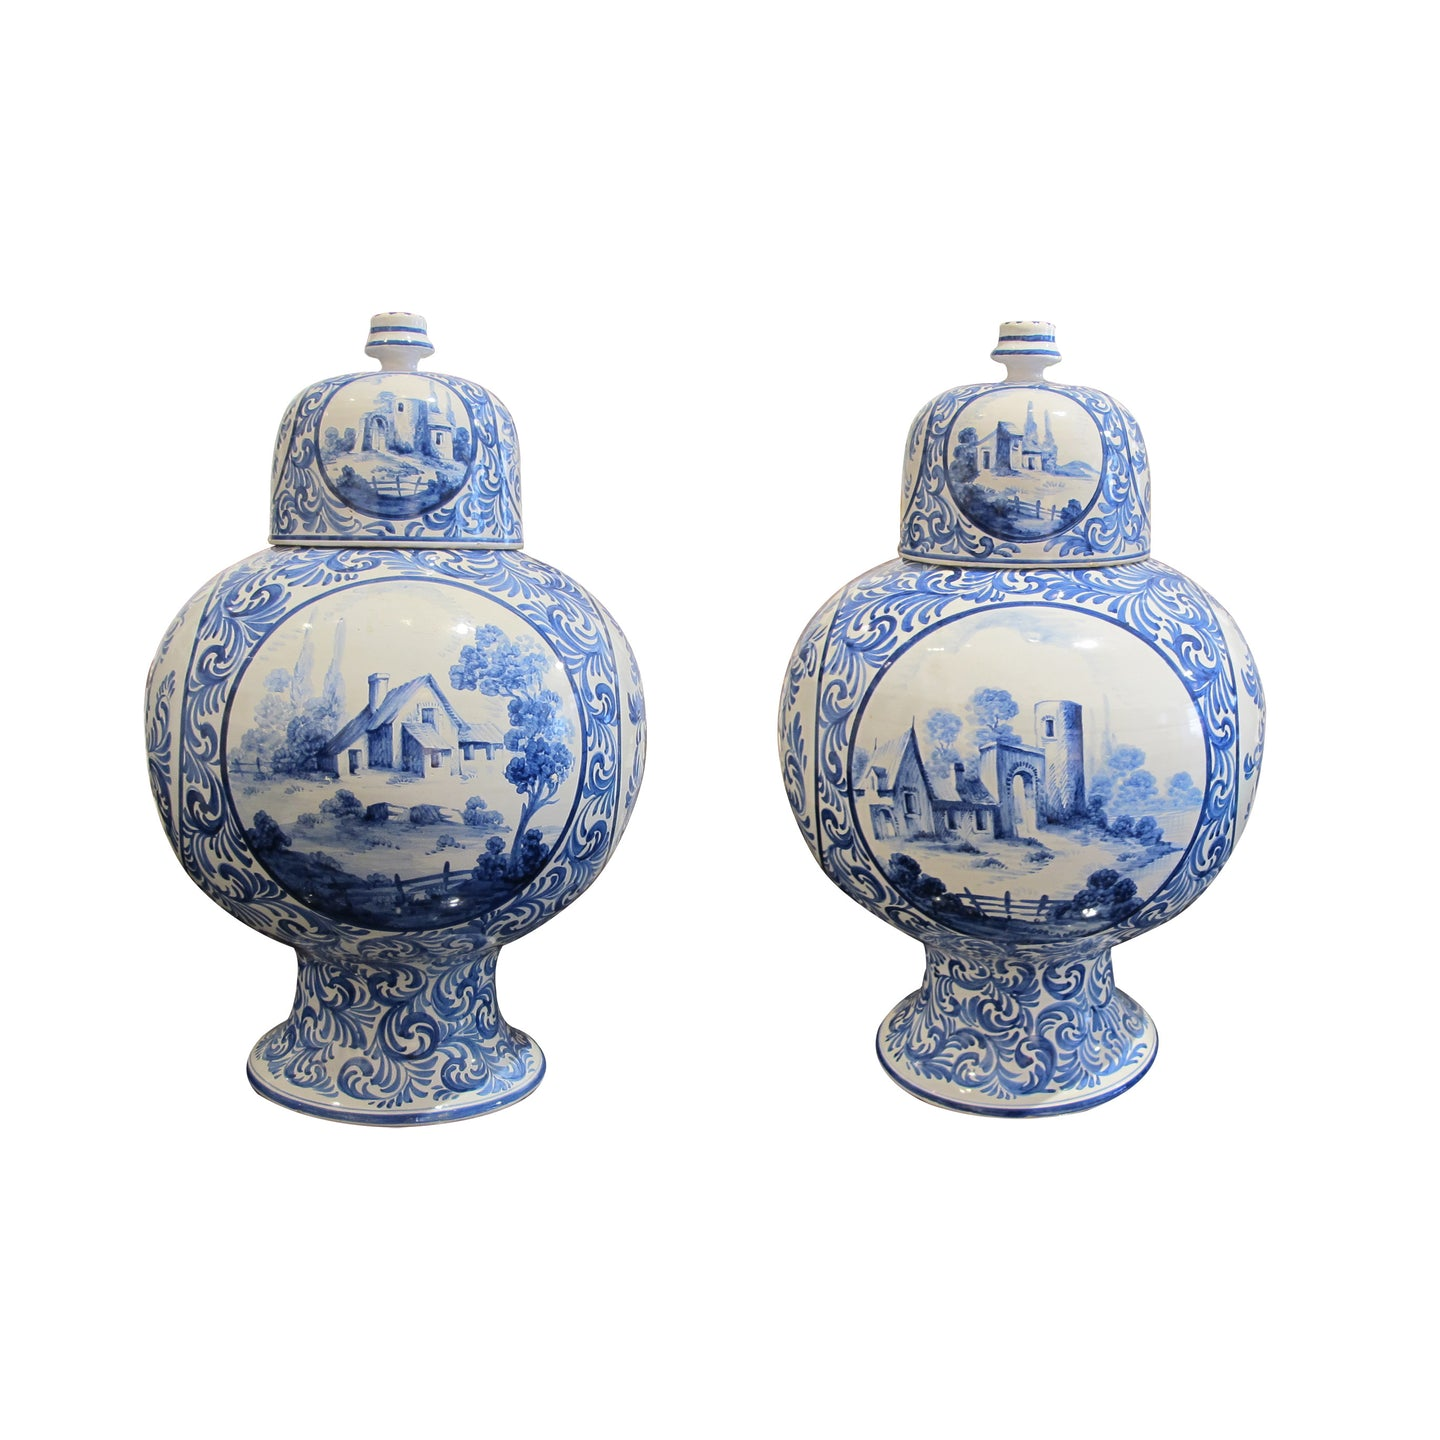 Pair of late 19th Century Delft vases, Dutch